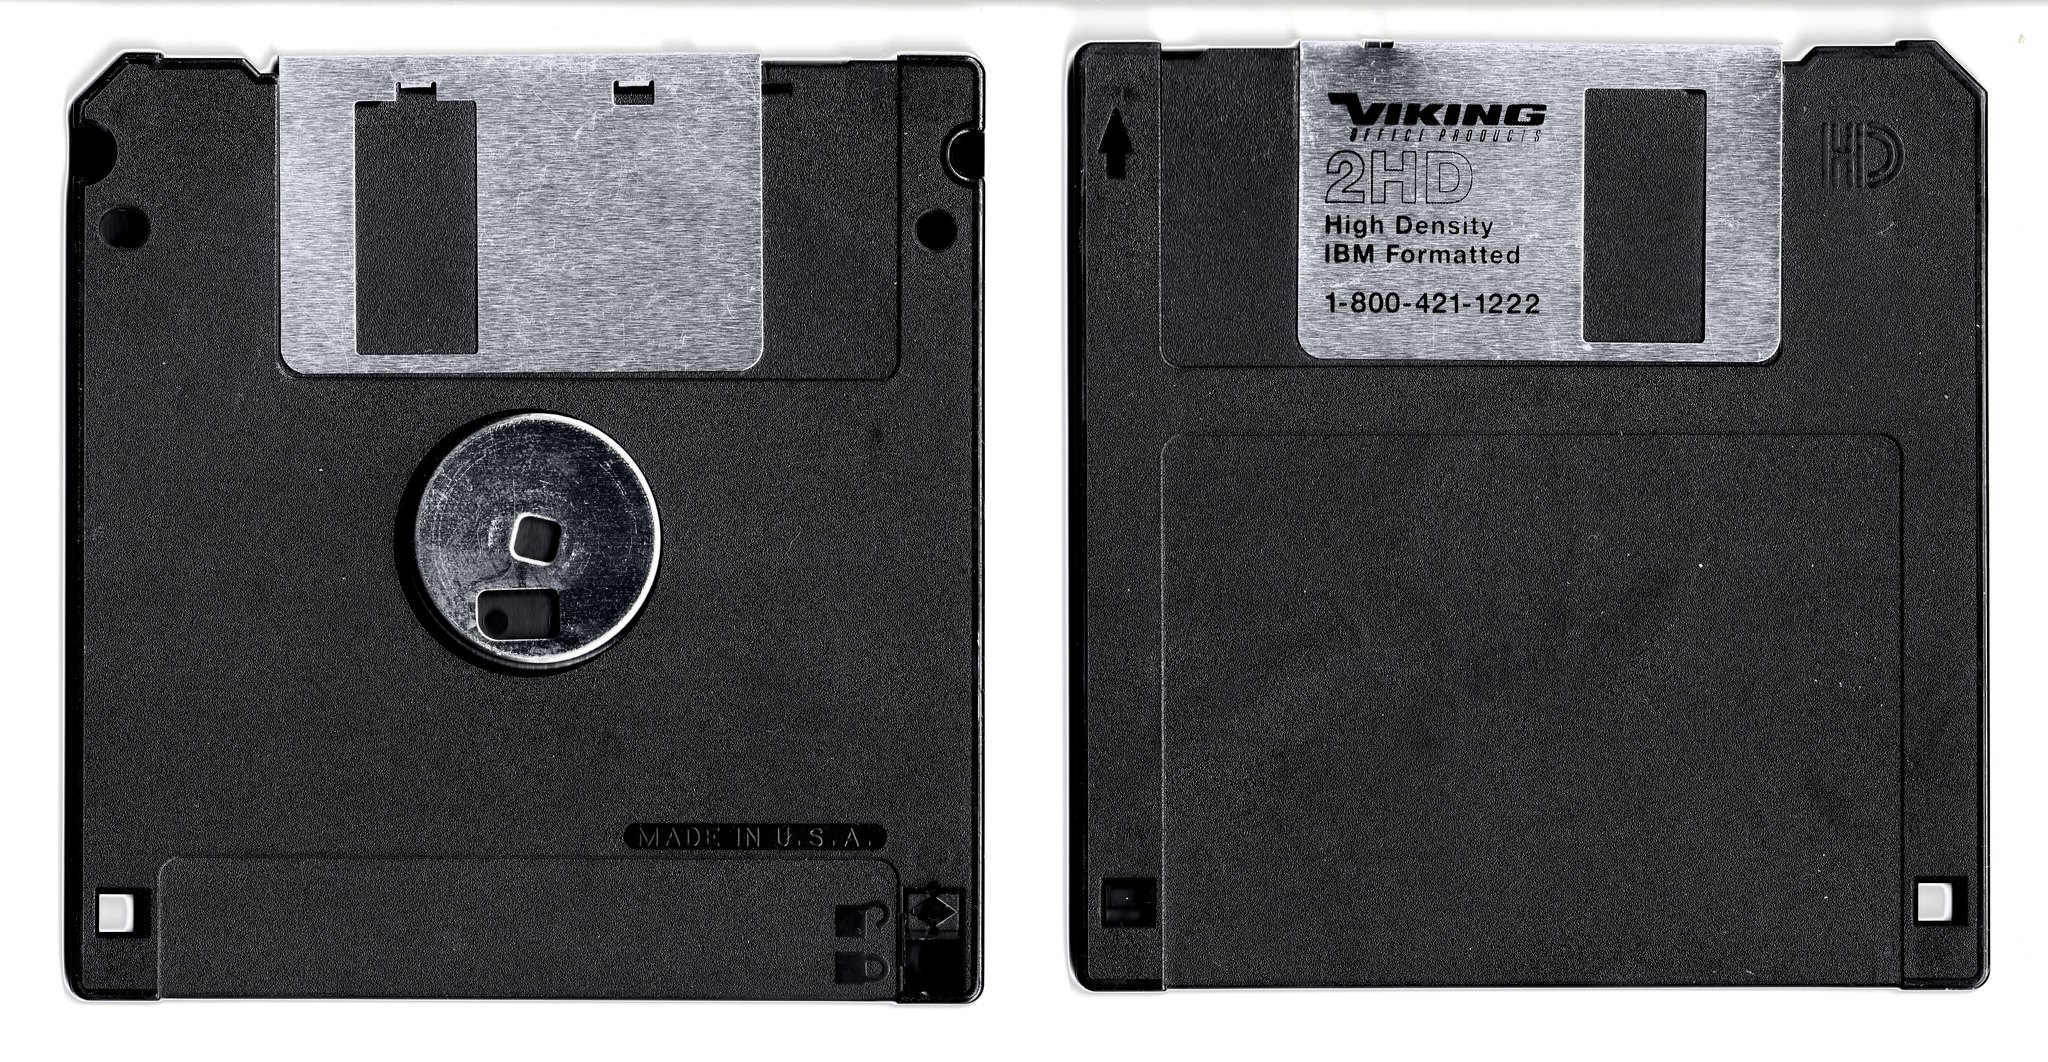 The front and back of a floppy disk